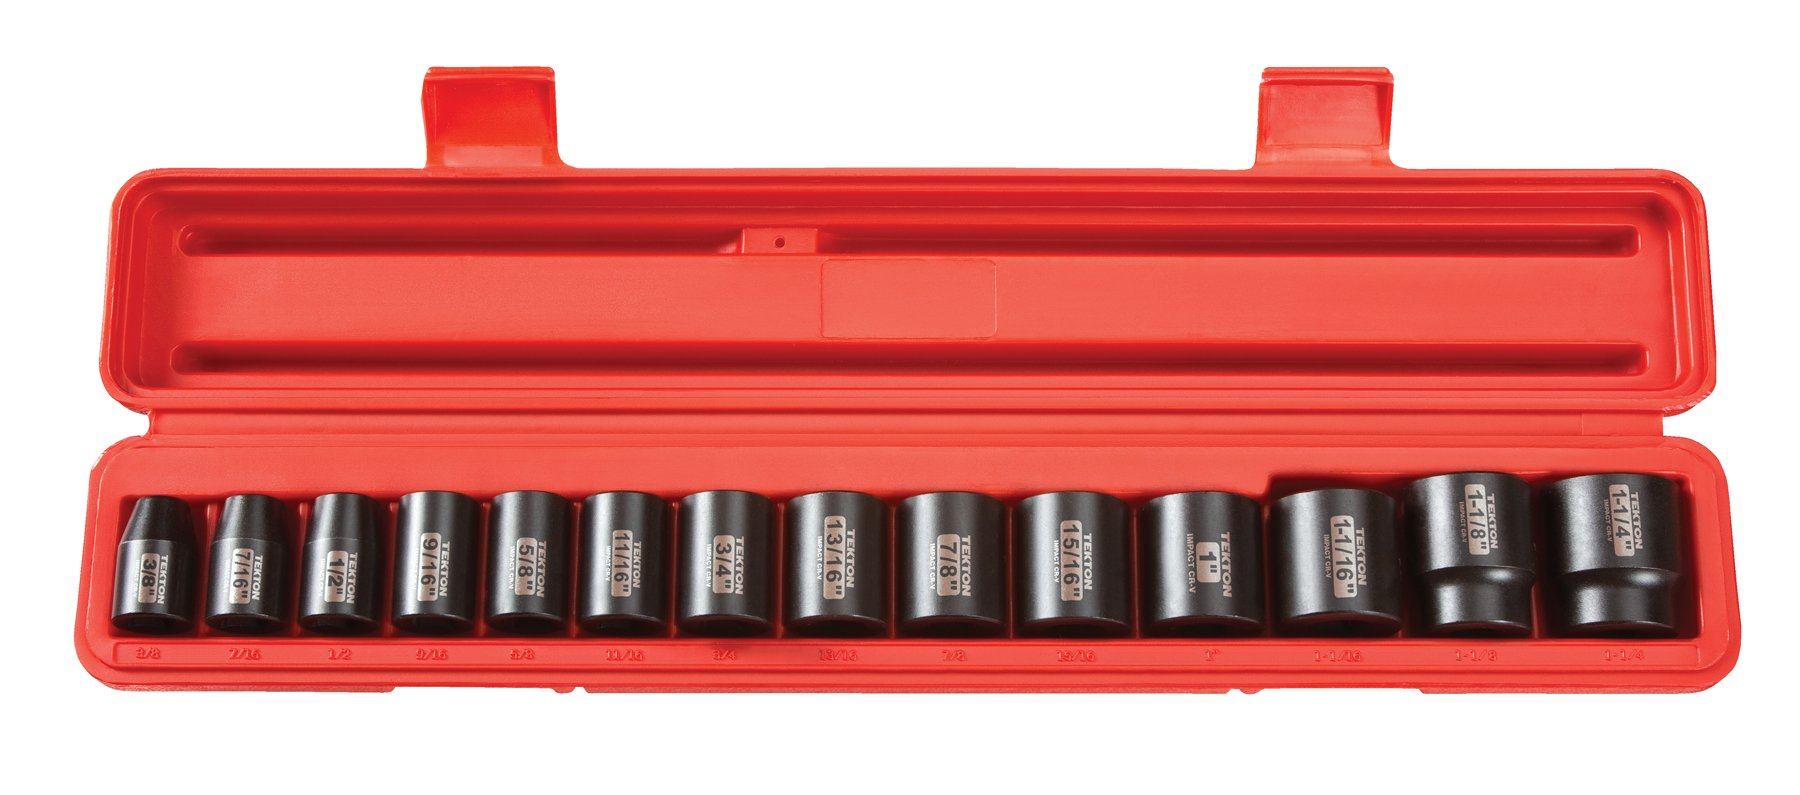 TEKTON 1/2-Inch Drive Shallow Impact Socket Set, Inch, Cr-V, 12-Point, 3/8-Inch - 1-1/4-Inch, 14-Sockets | 48161 by TEKTON